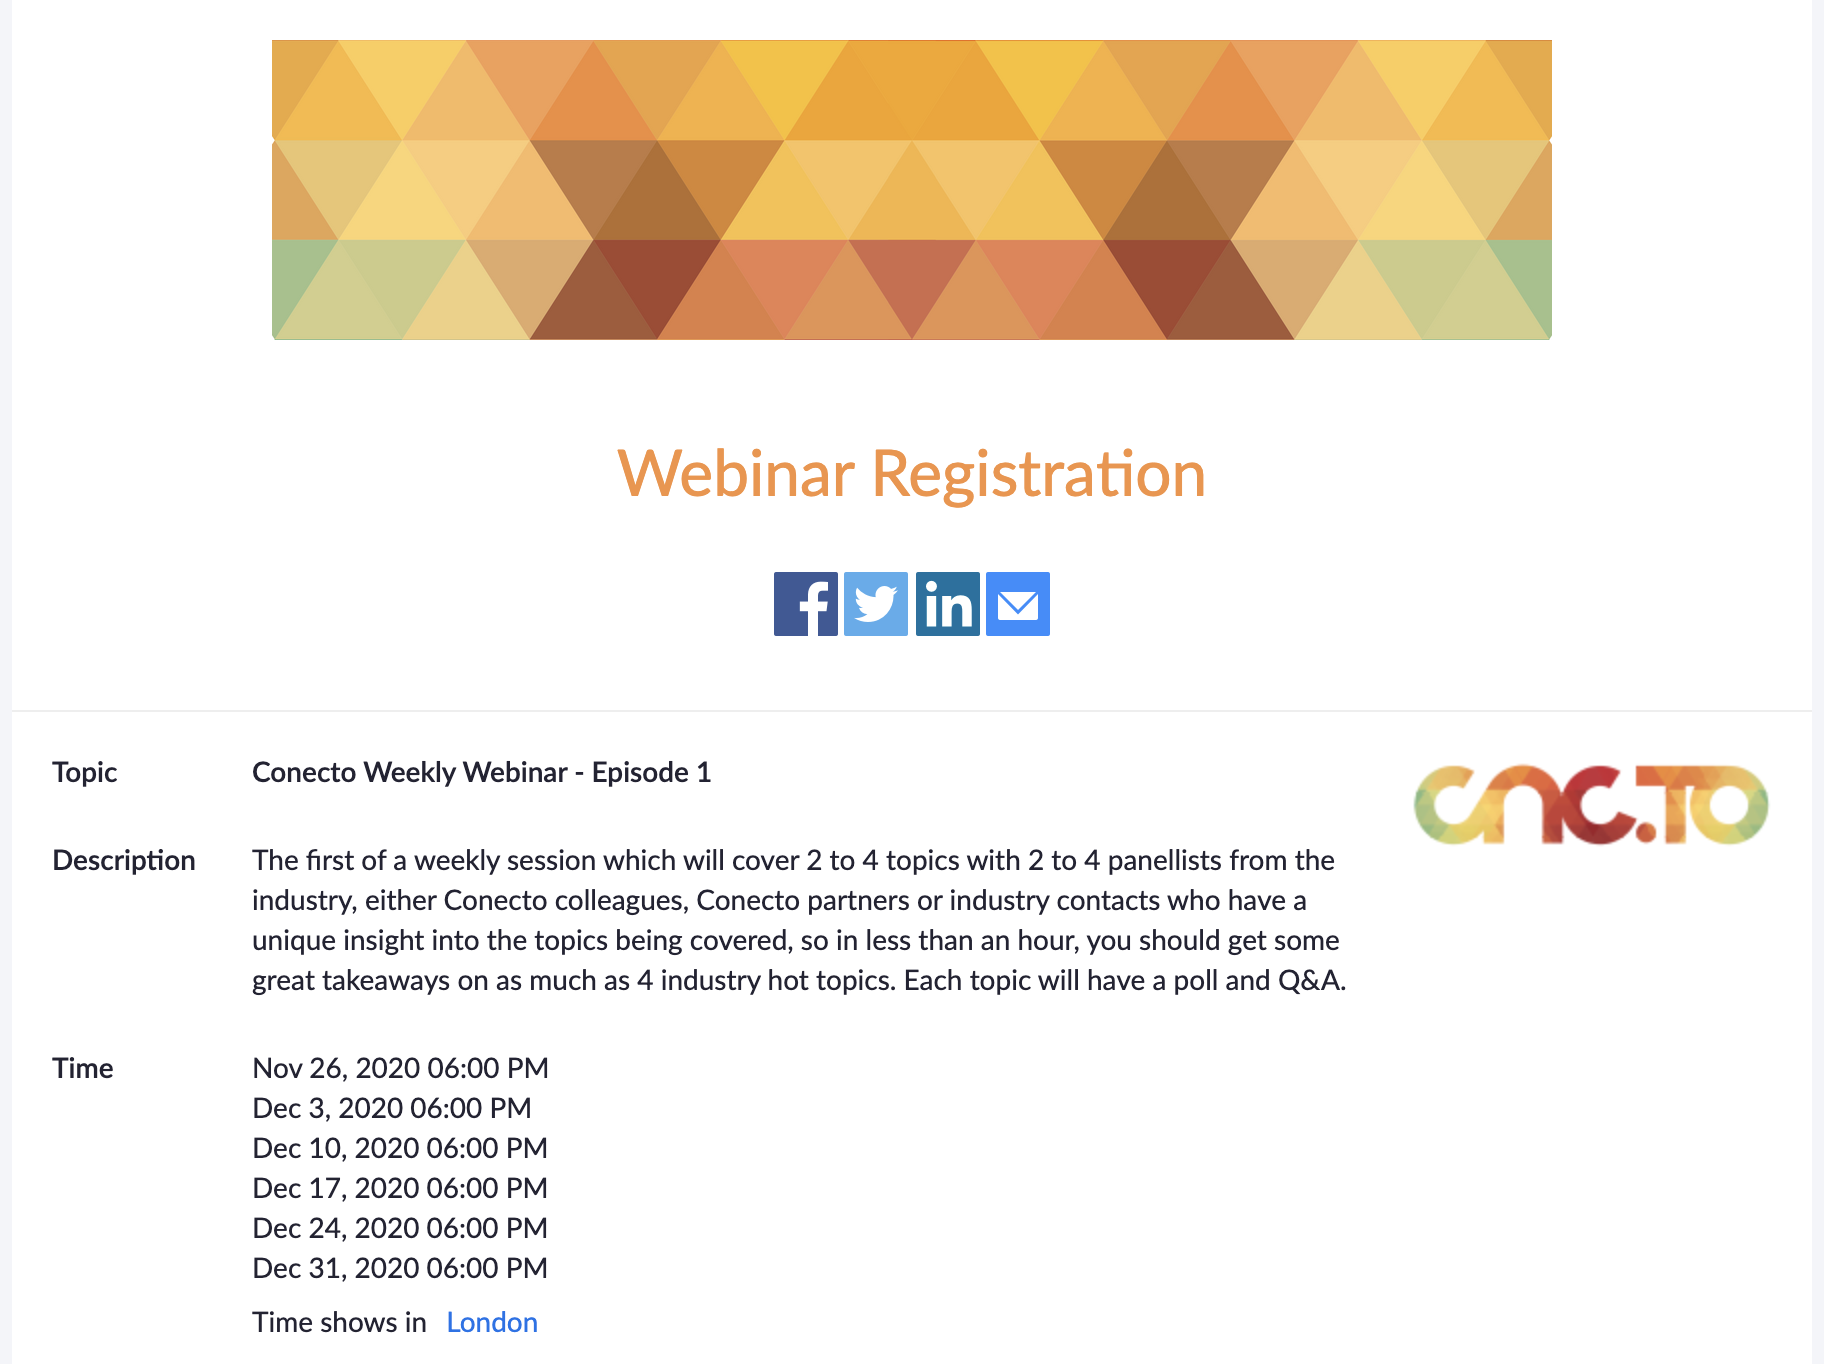 Weekly Webinars starting Thanksgiving 2020